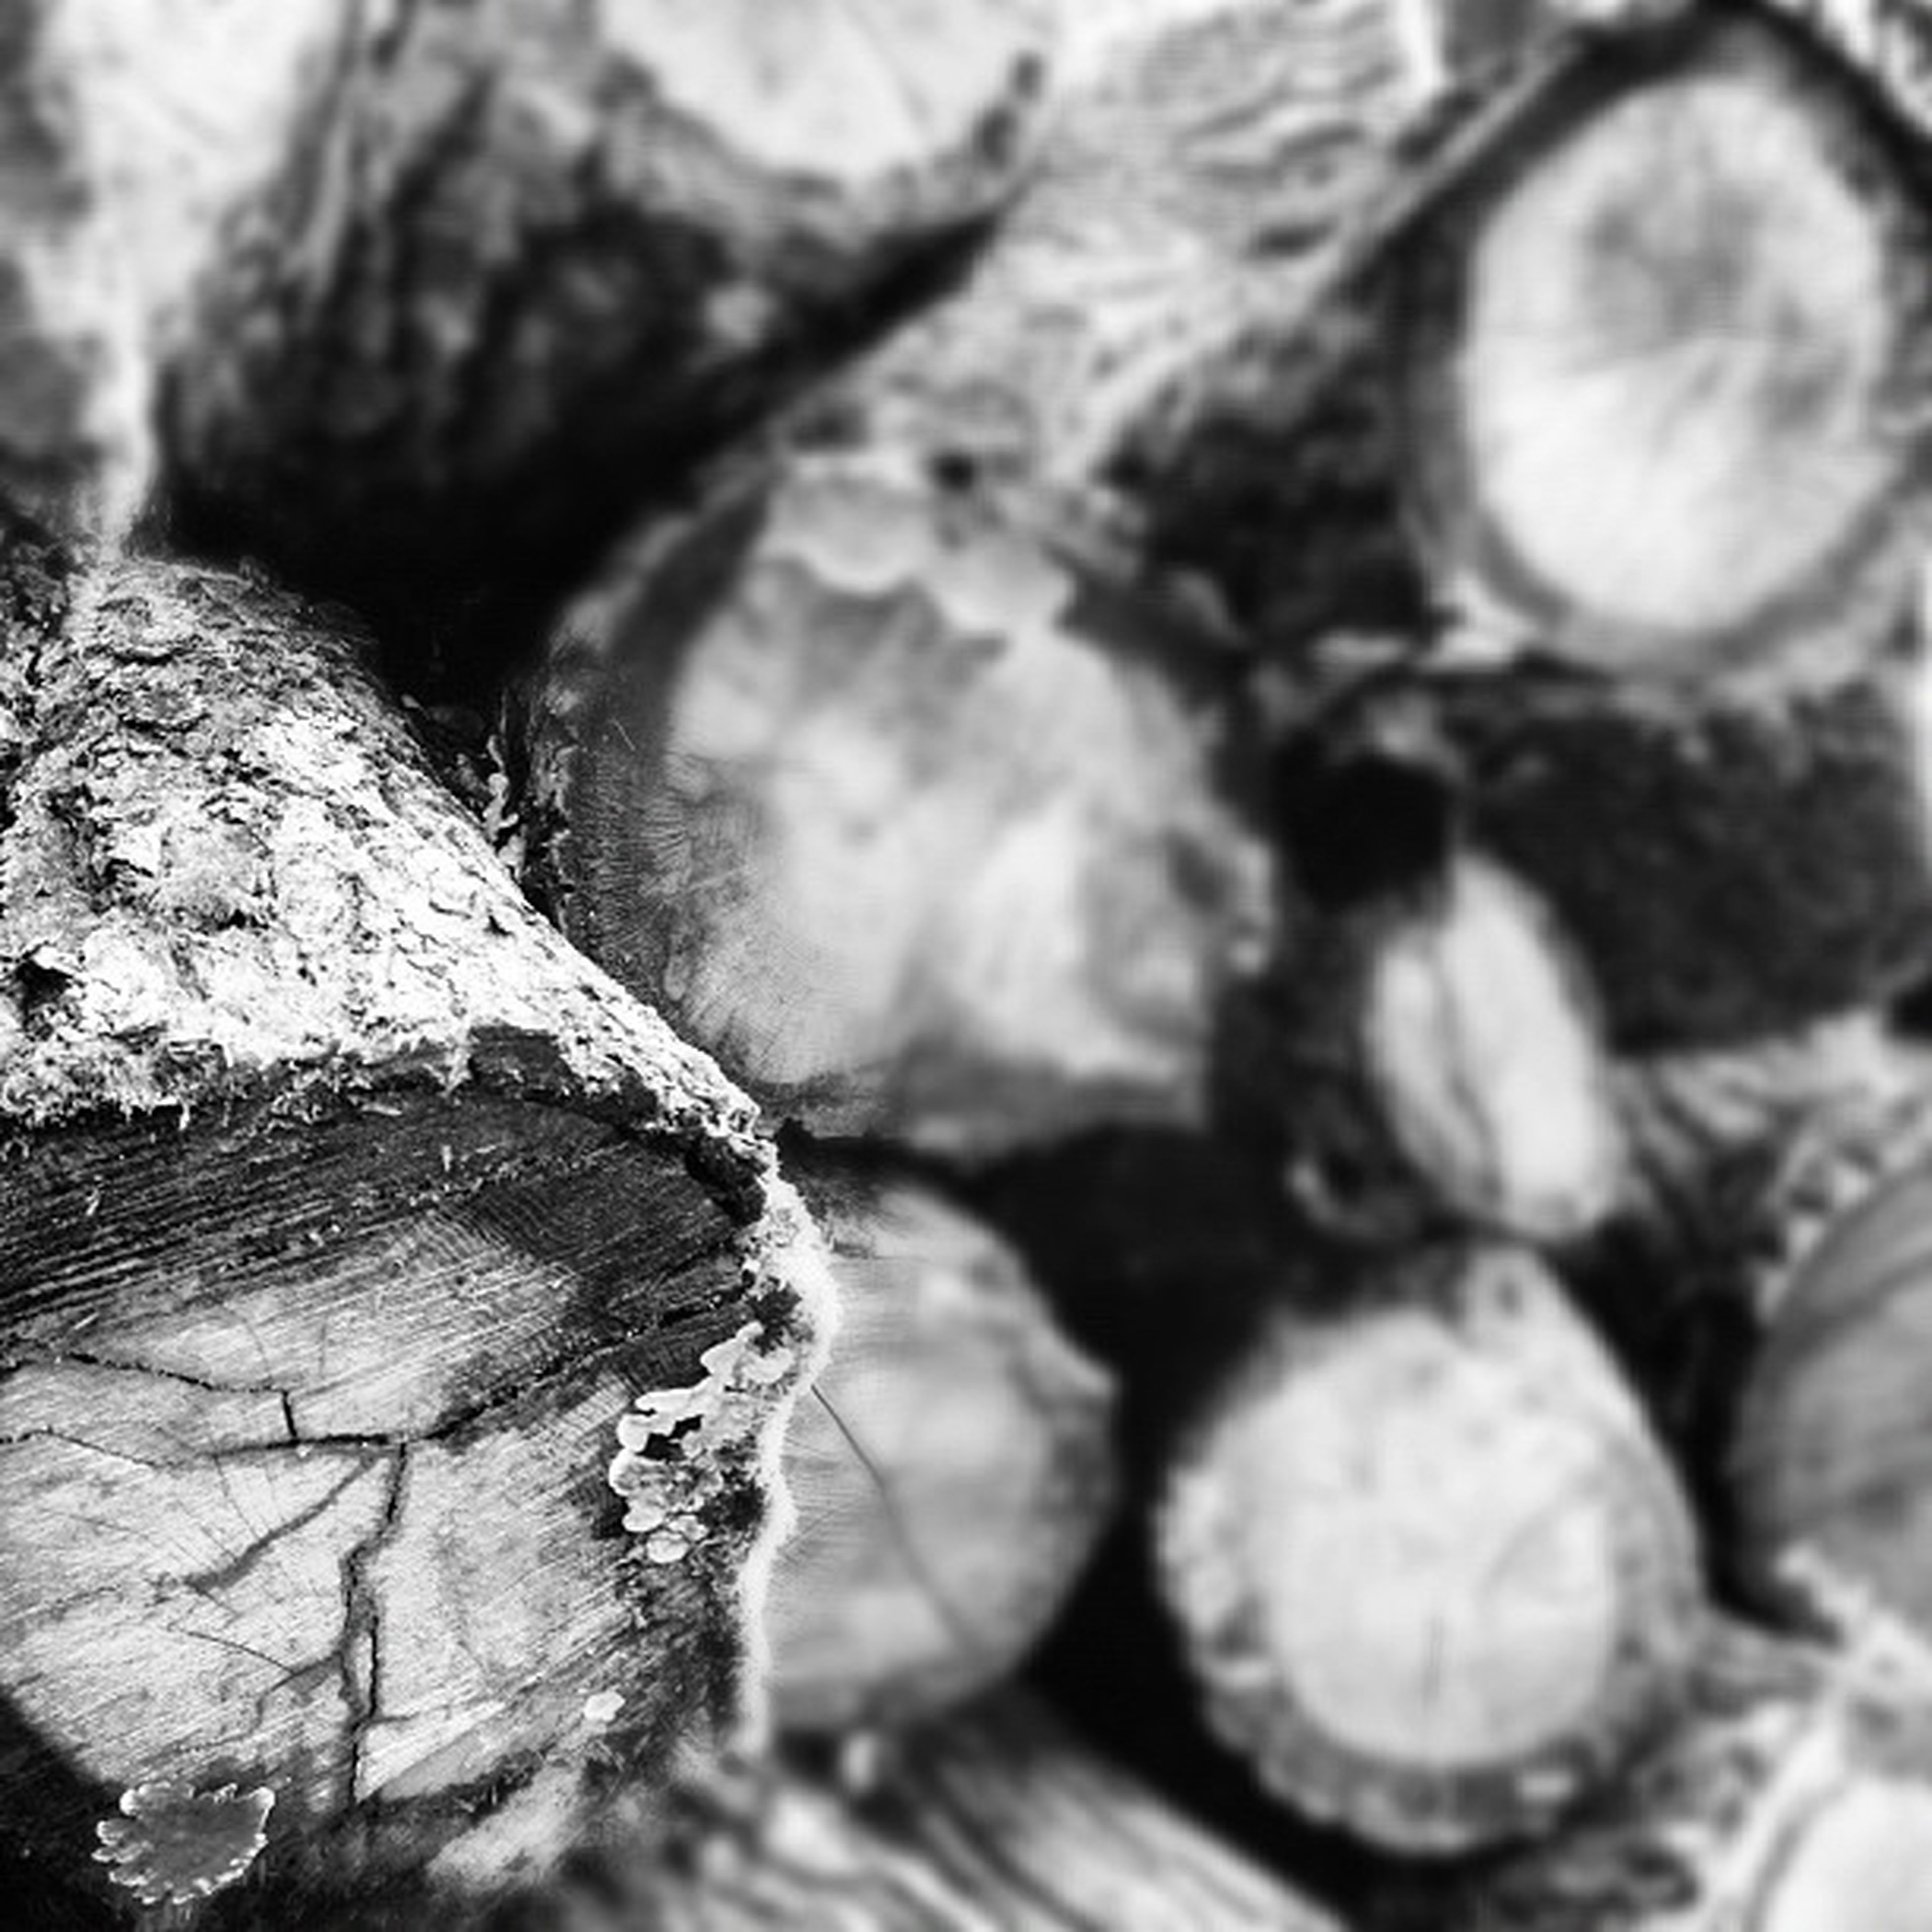 close-up, textured, full frame, backgrounds, pattern, detail, selective focus, rough, no people, wood - material, outdoors, natural pattern, day, tree, stack, focus on foreground, part of, nature, tree trunk, deforestation